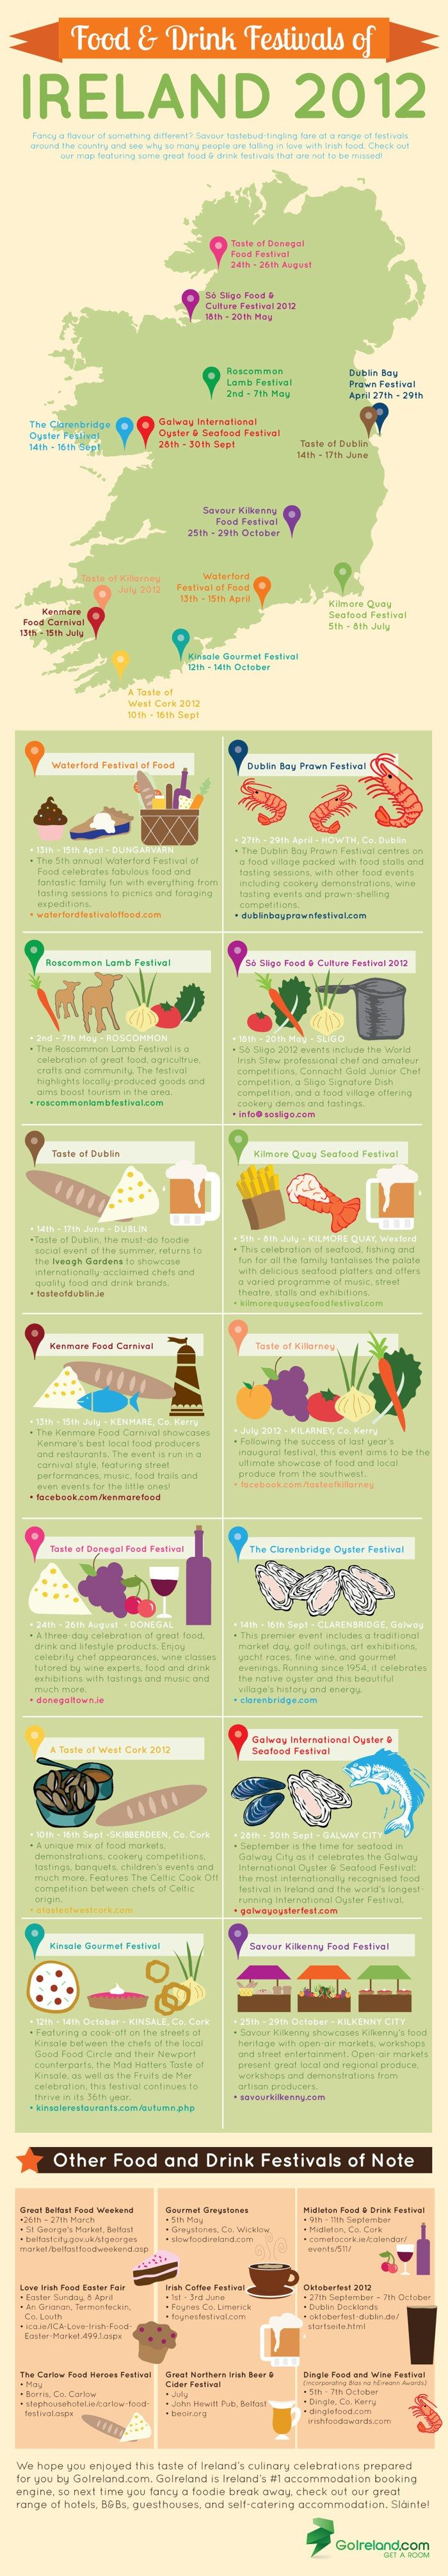 Artisan food tour of Ireland- with 13 stops?  (foodie fests from 2012)